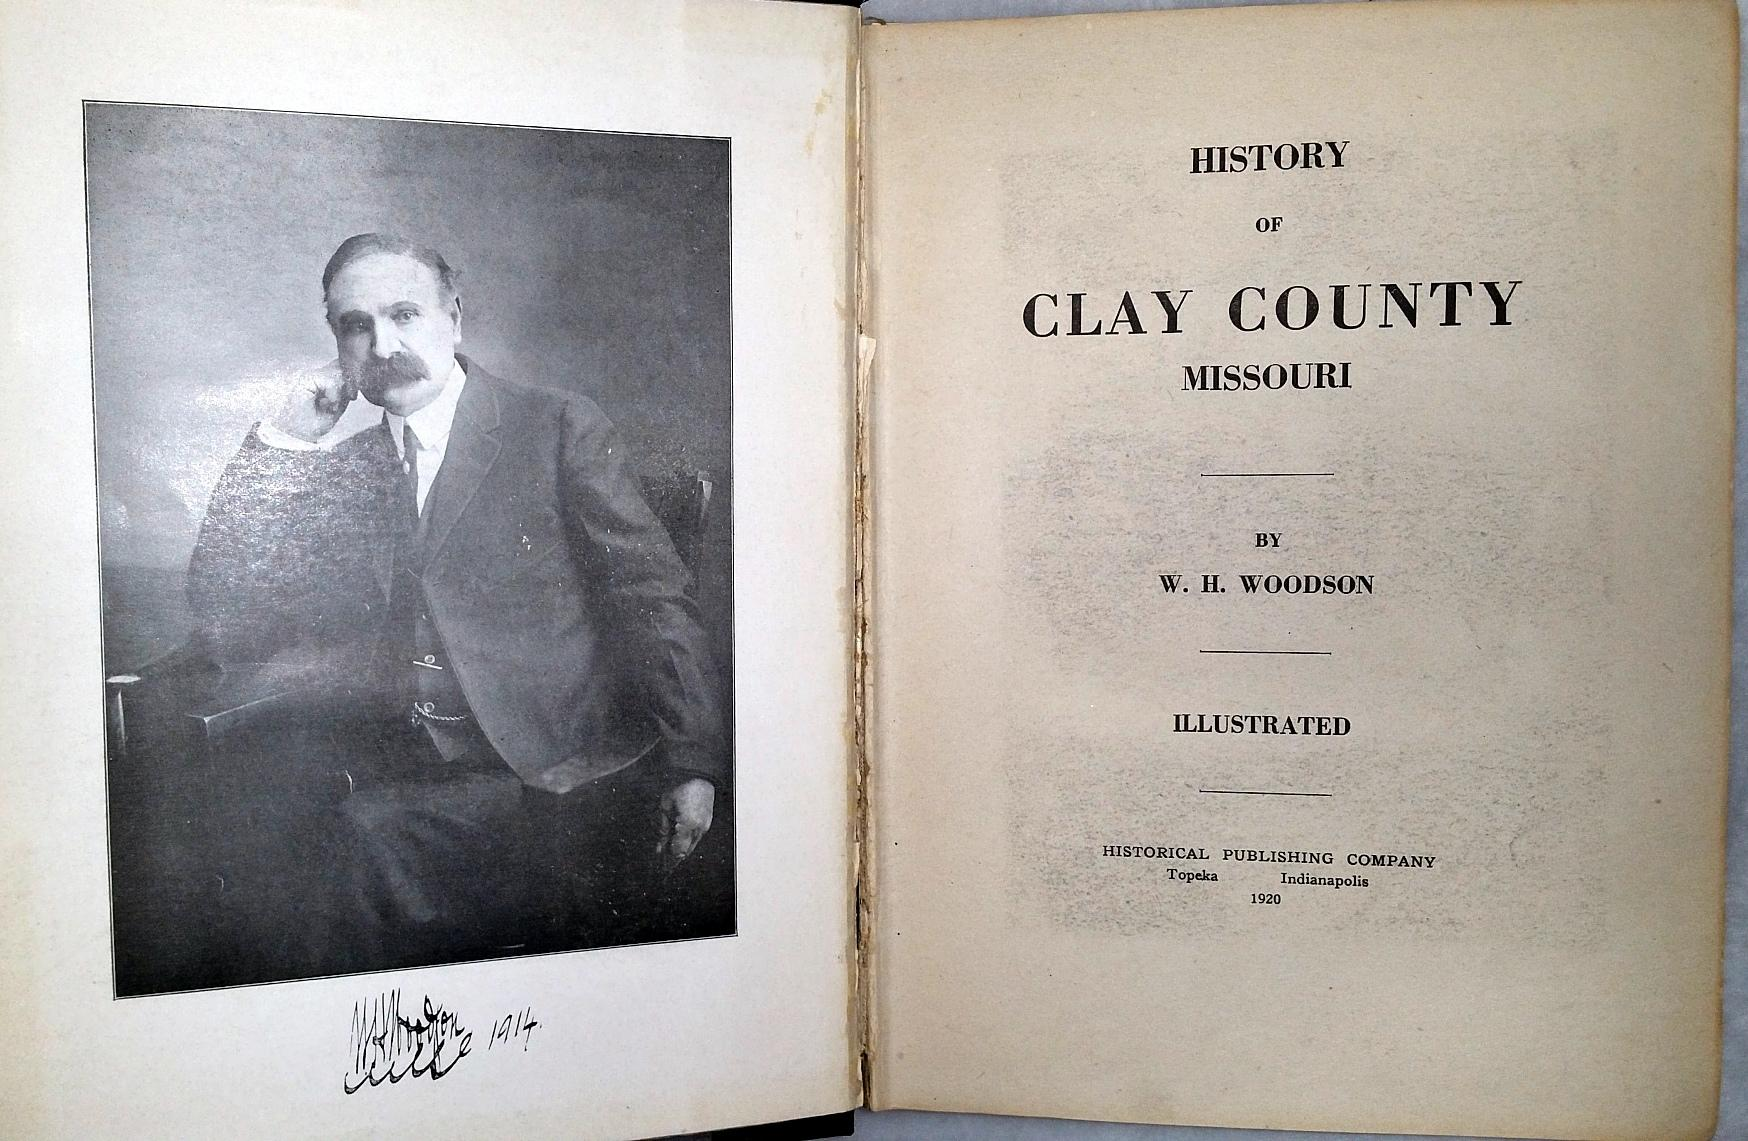 History of Clay County Missouri: Woodson, W. H.